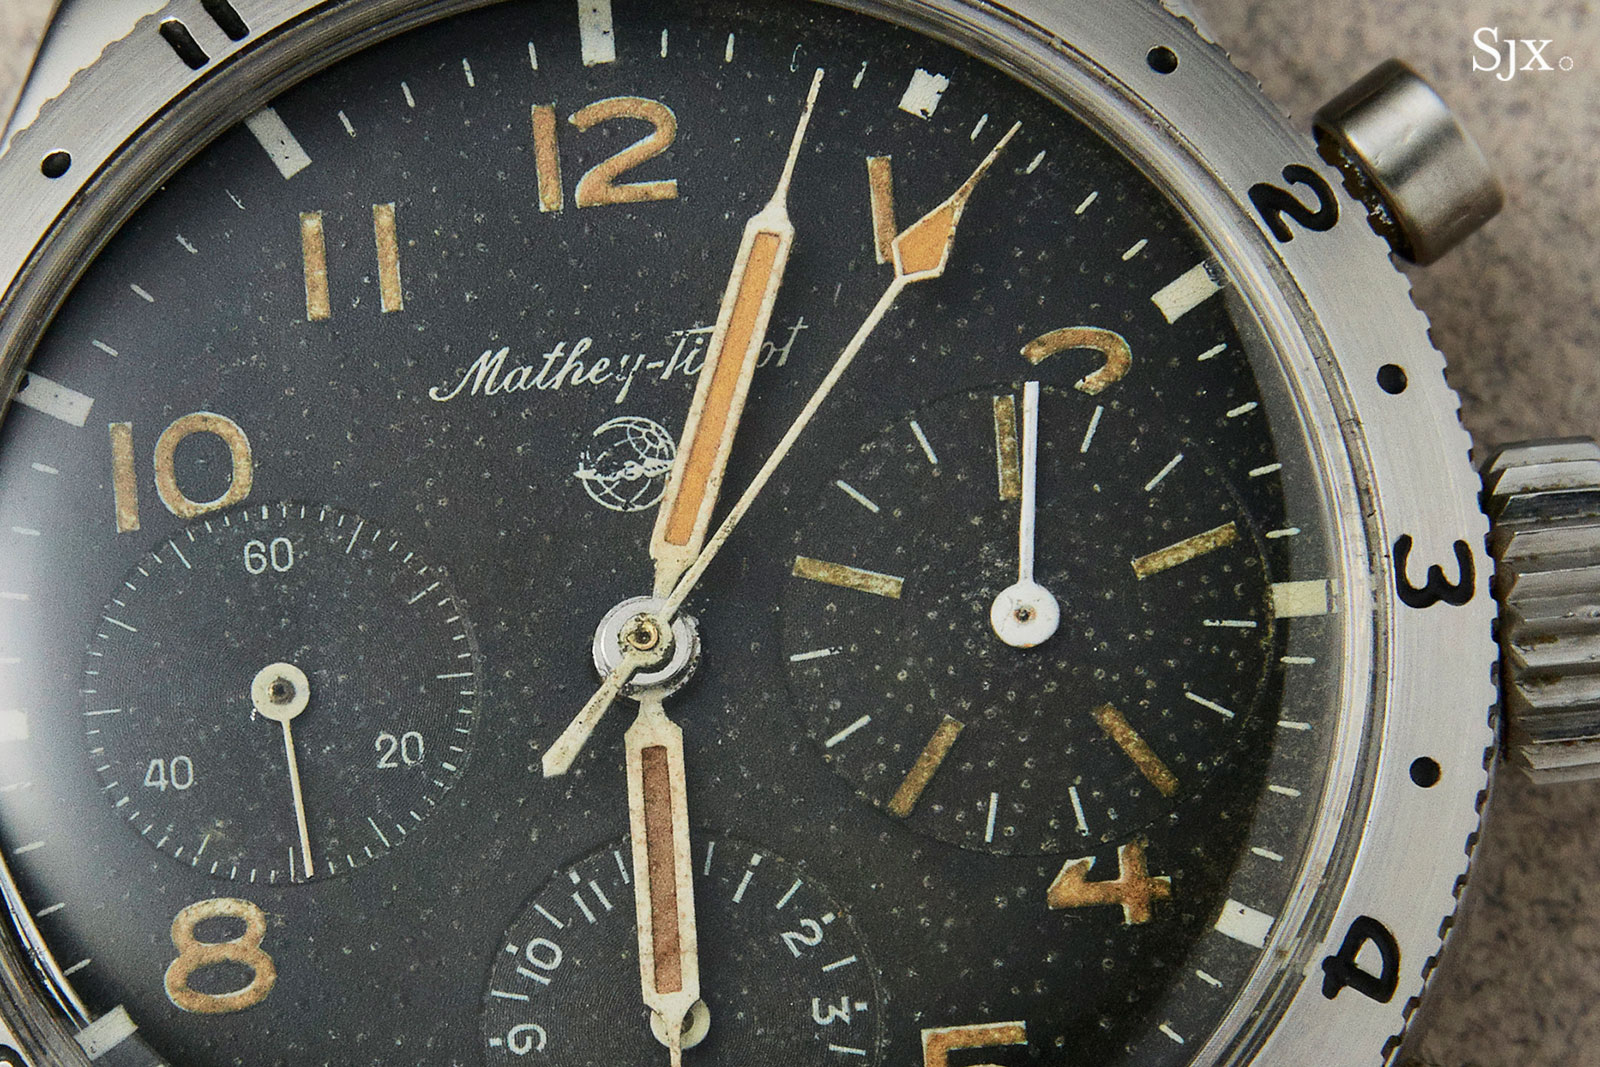 Mathey-Tissot Type XX chronograph 1